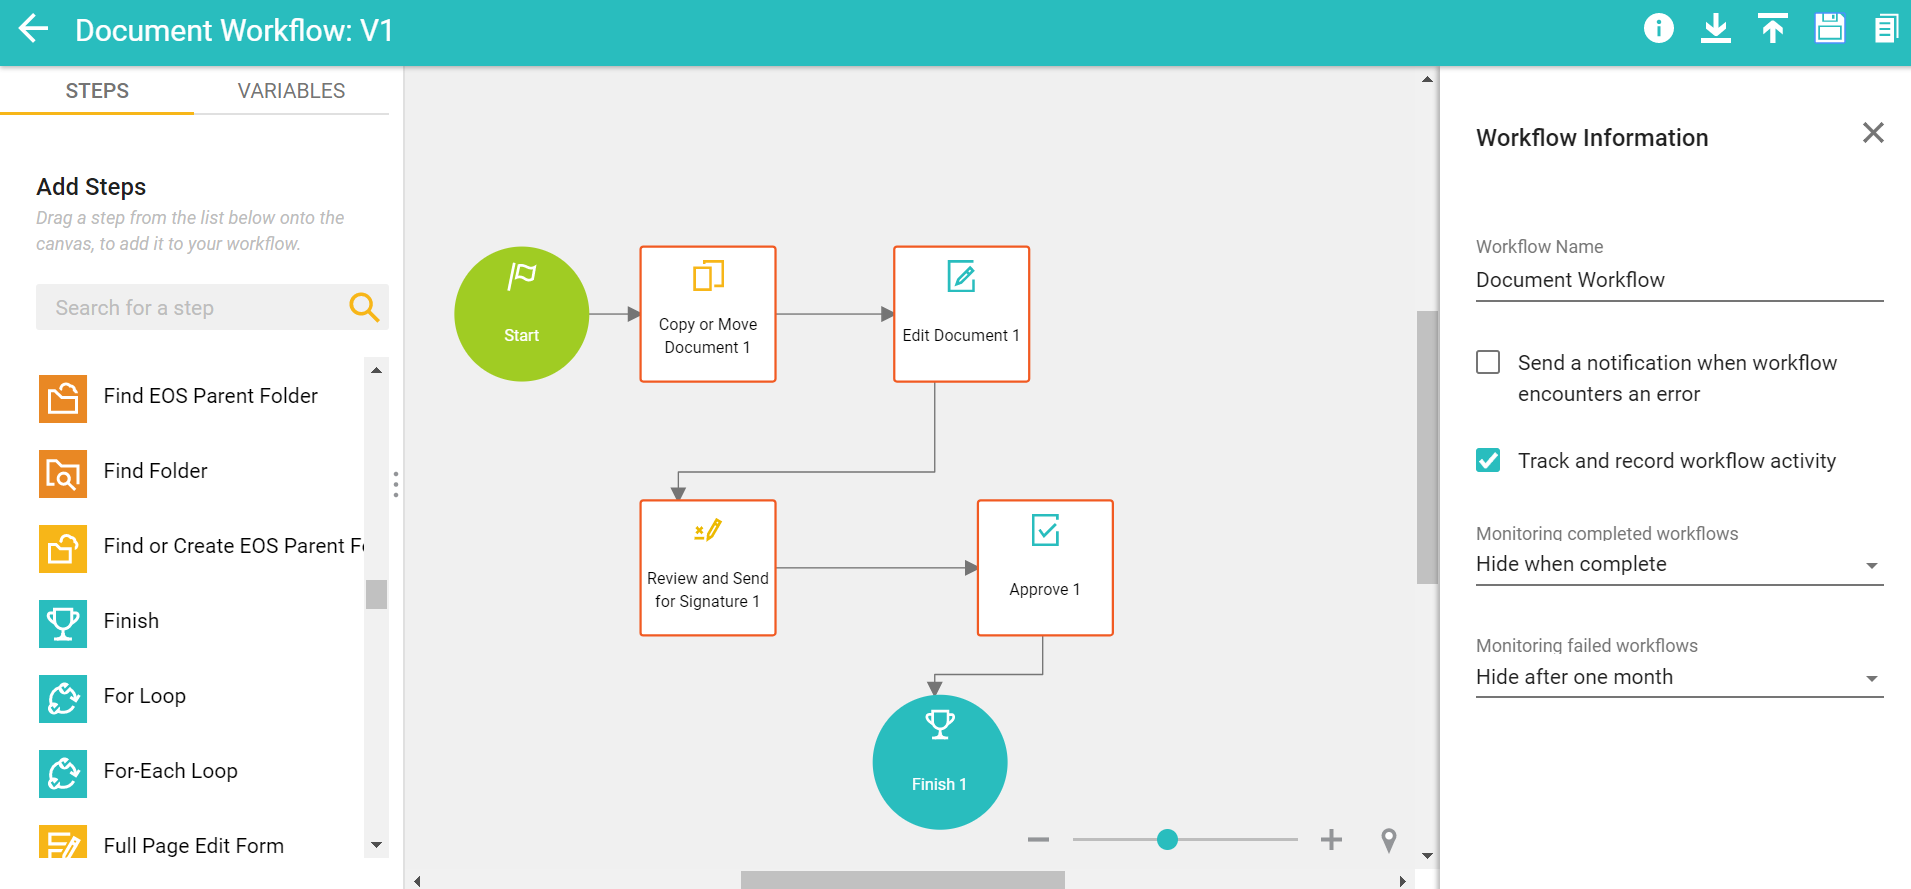 SpringCM Contract Management Demo - Create Advanced and Simple Workflows